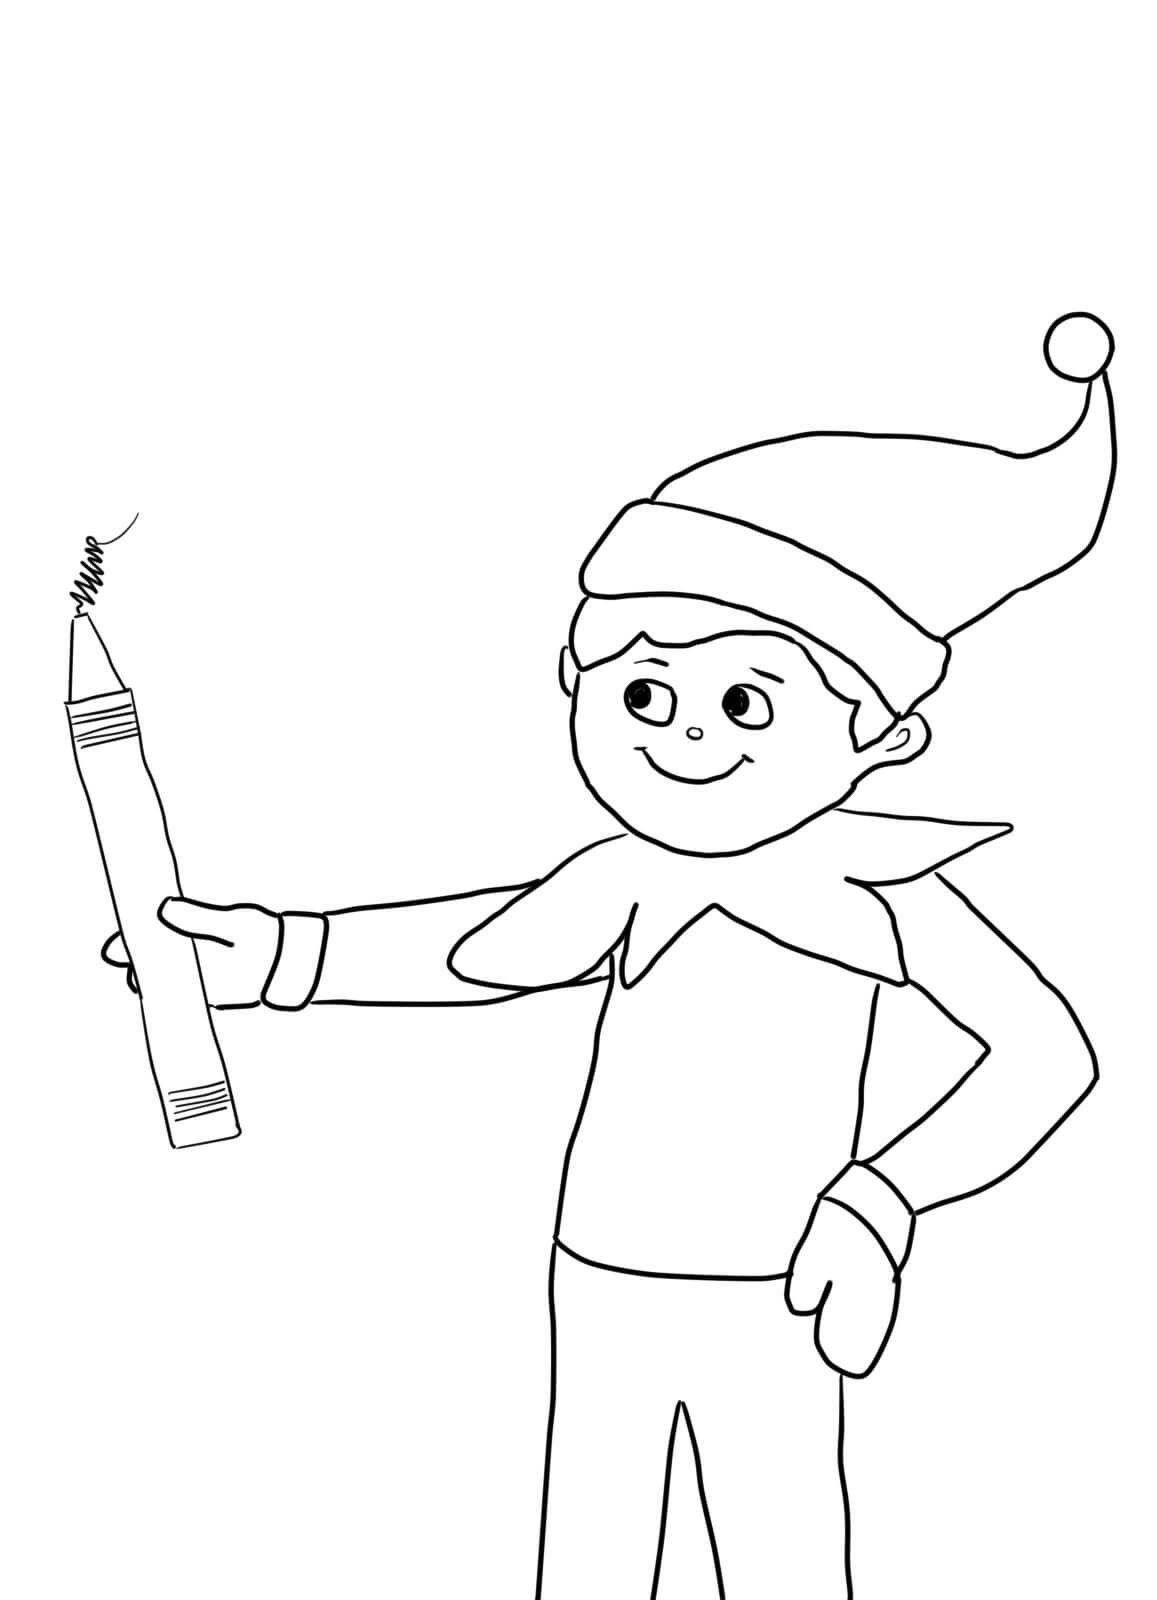 elf on the shelf pictures to color printable strange elf on the shelf color pages coloring on the color elf shelf pictures to